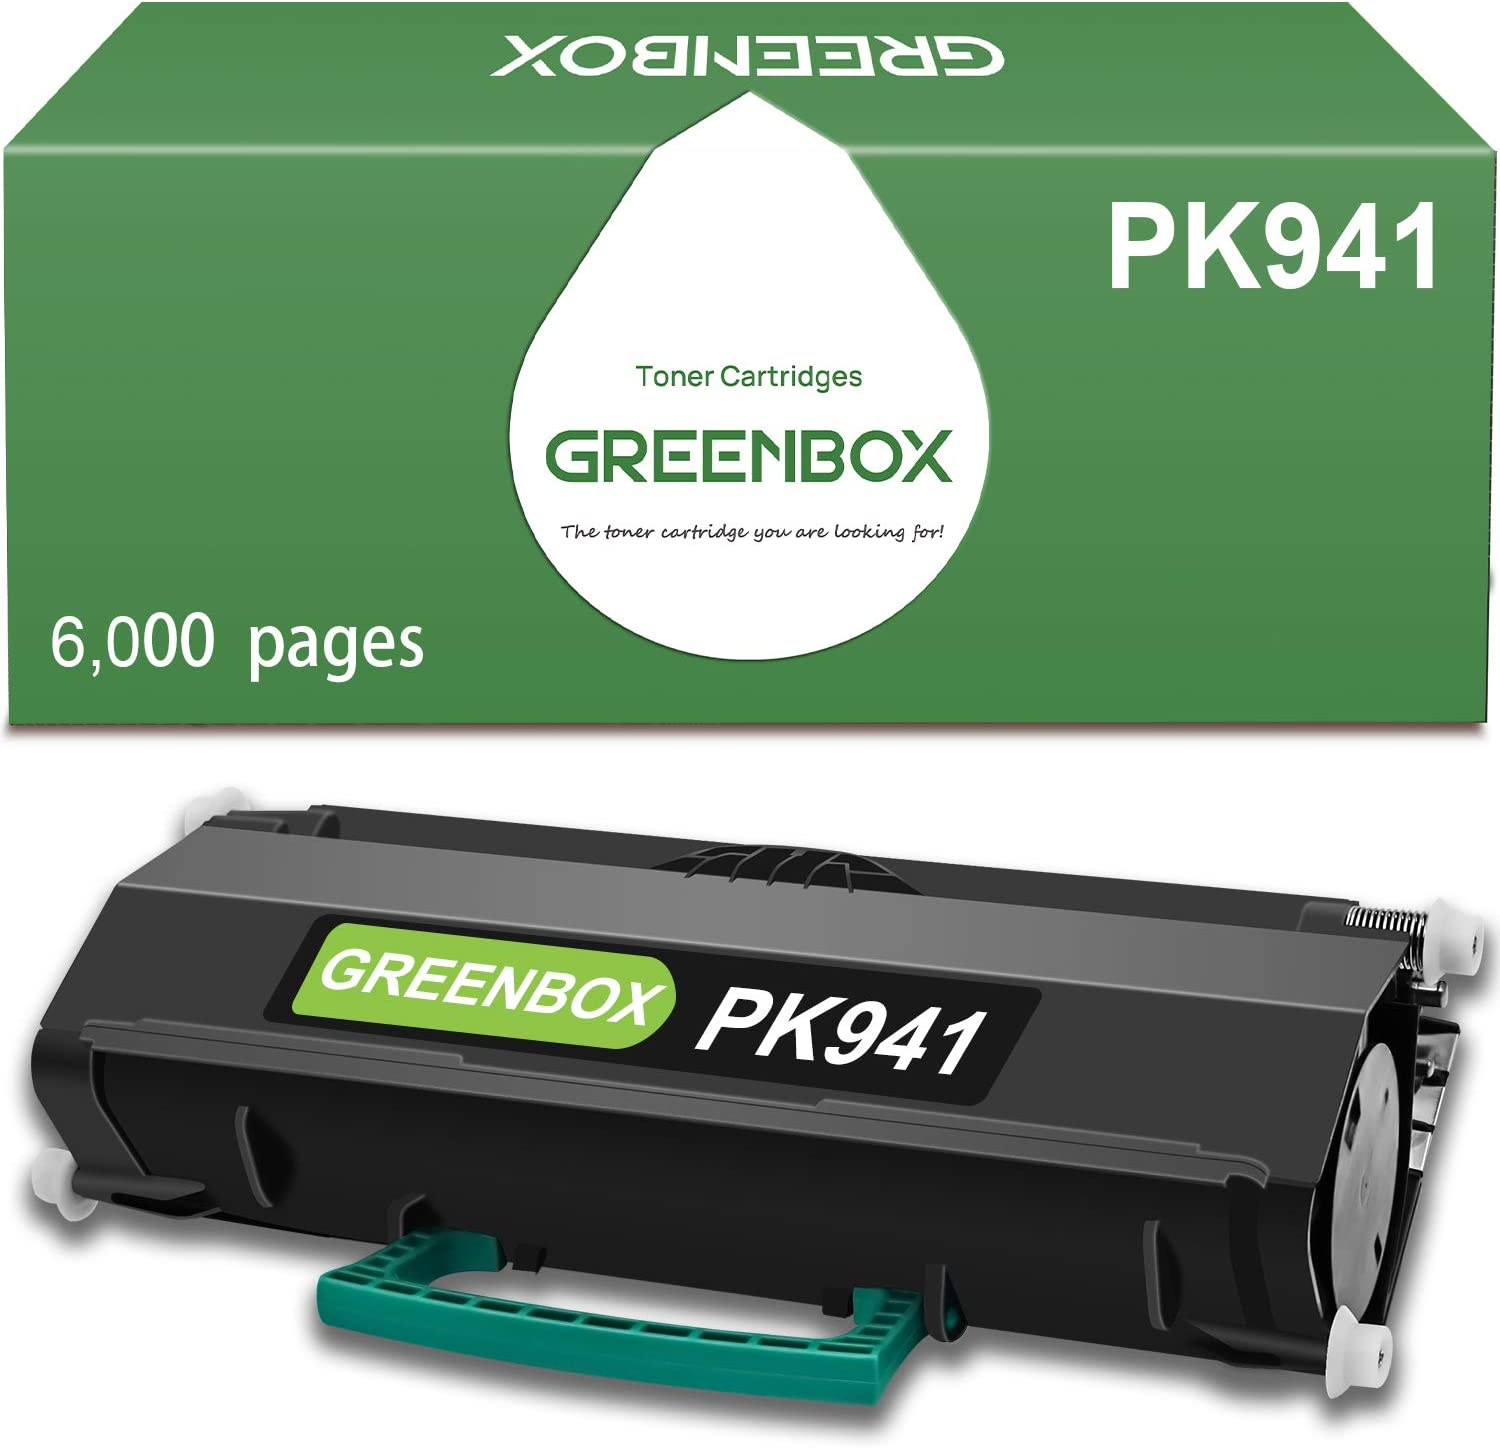 GREENBOX Compatible Toner Cartridge Replacement for Dell PK941 for Dell 2350DN 2330DN 2330D 2330DTN 2330 2350D 2350 Printer (6,000 Pages High Yield, Black, 1-Pack)